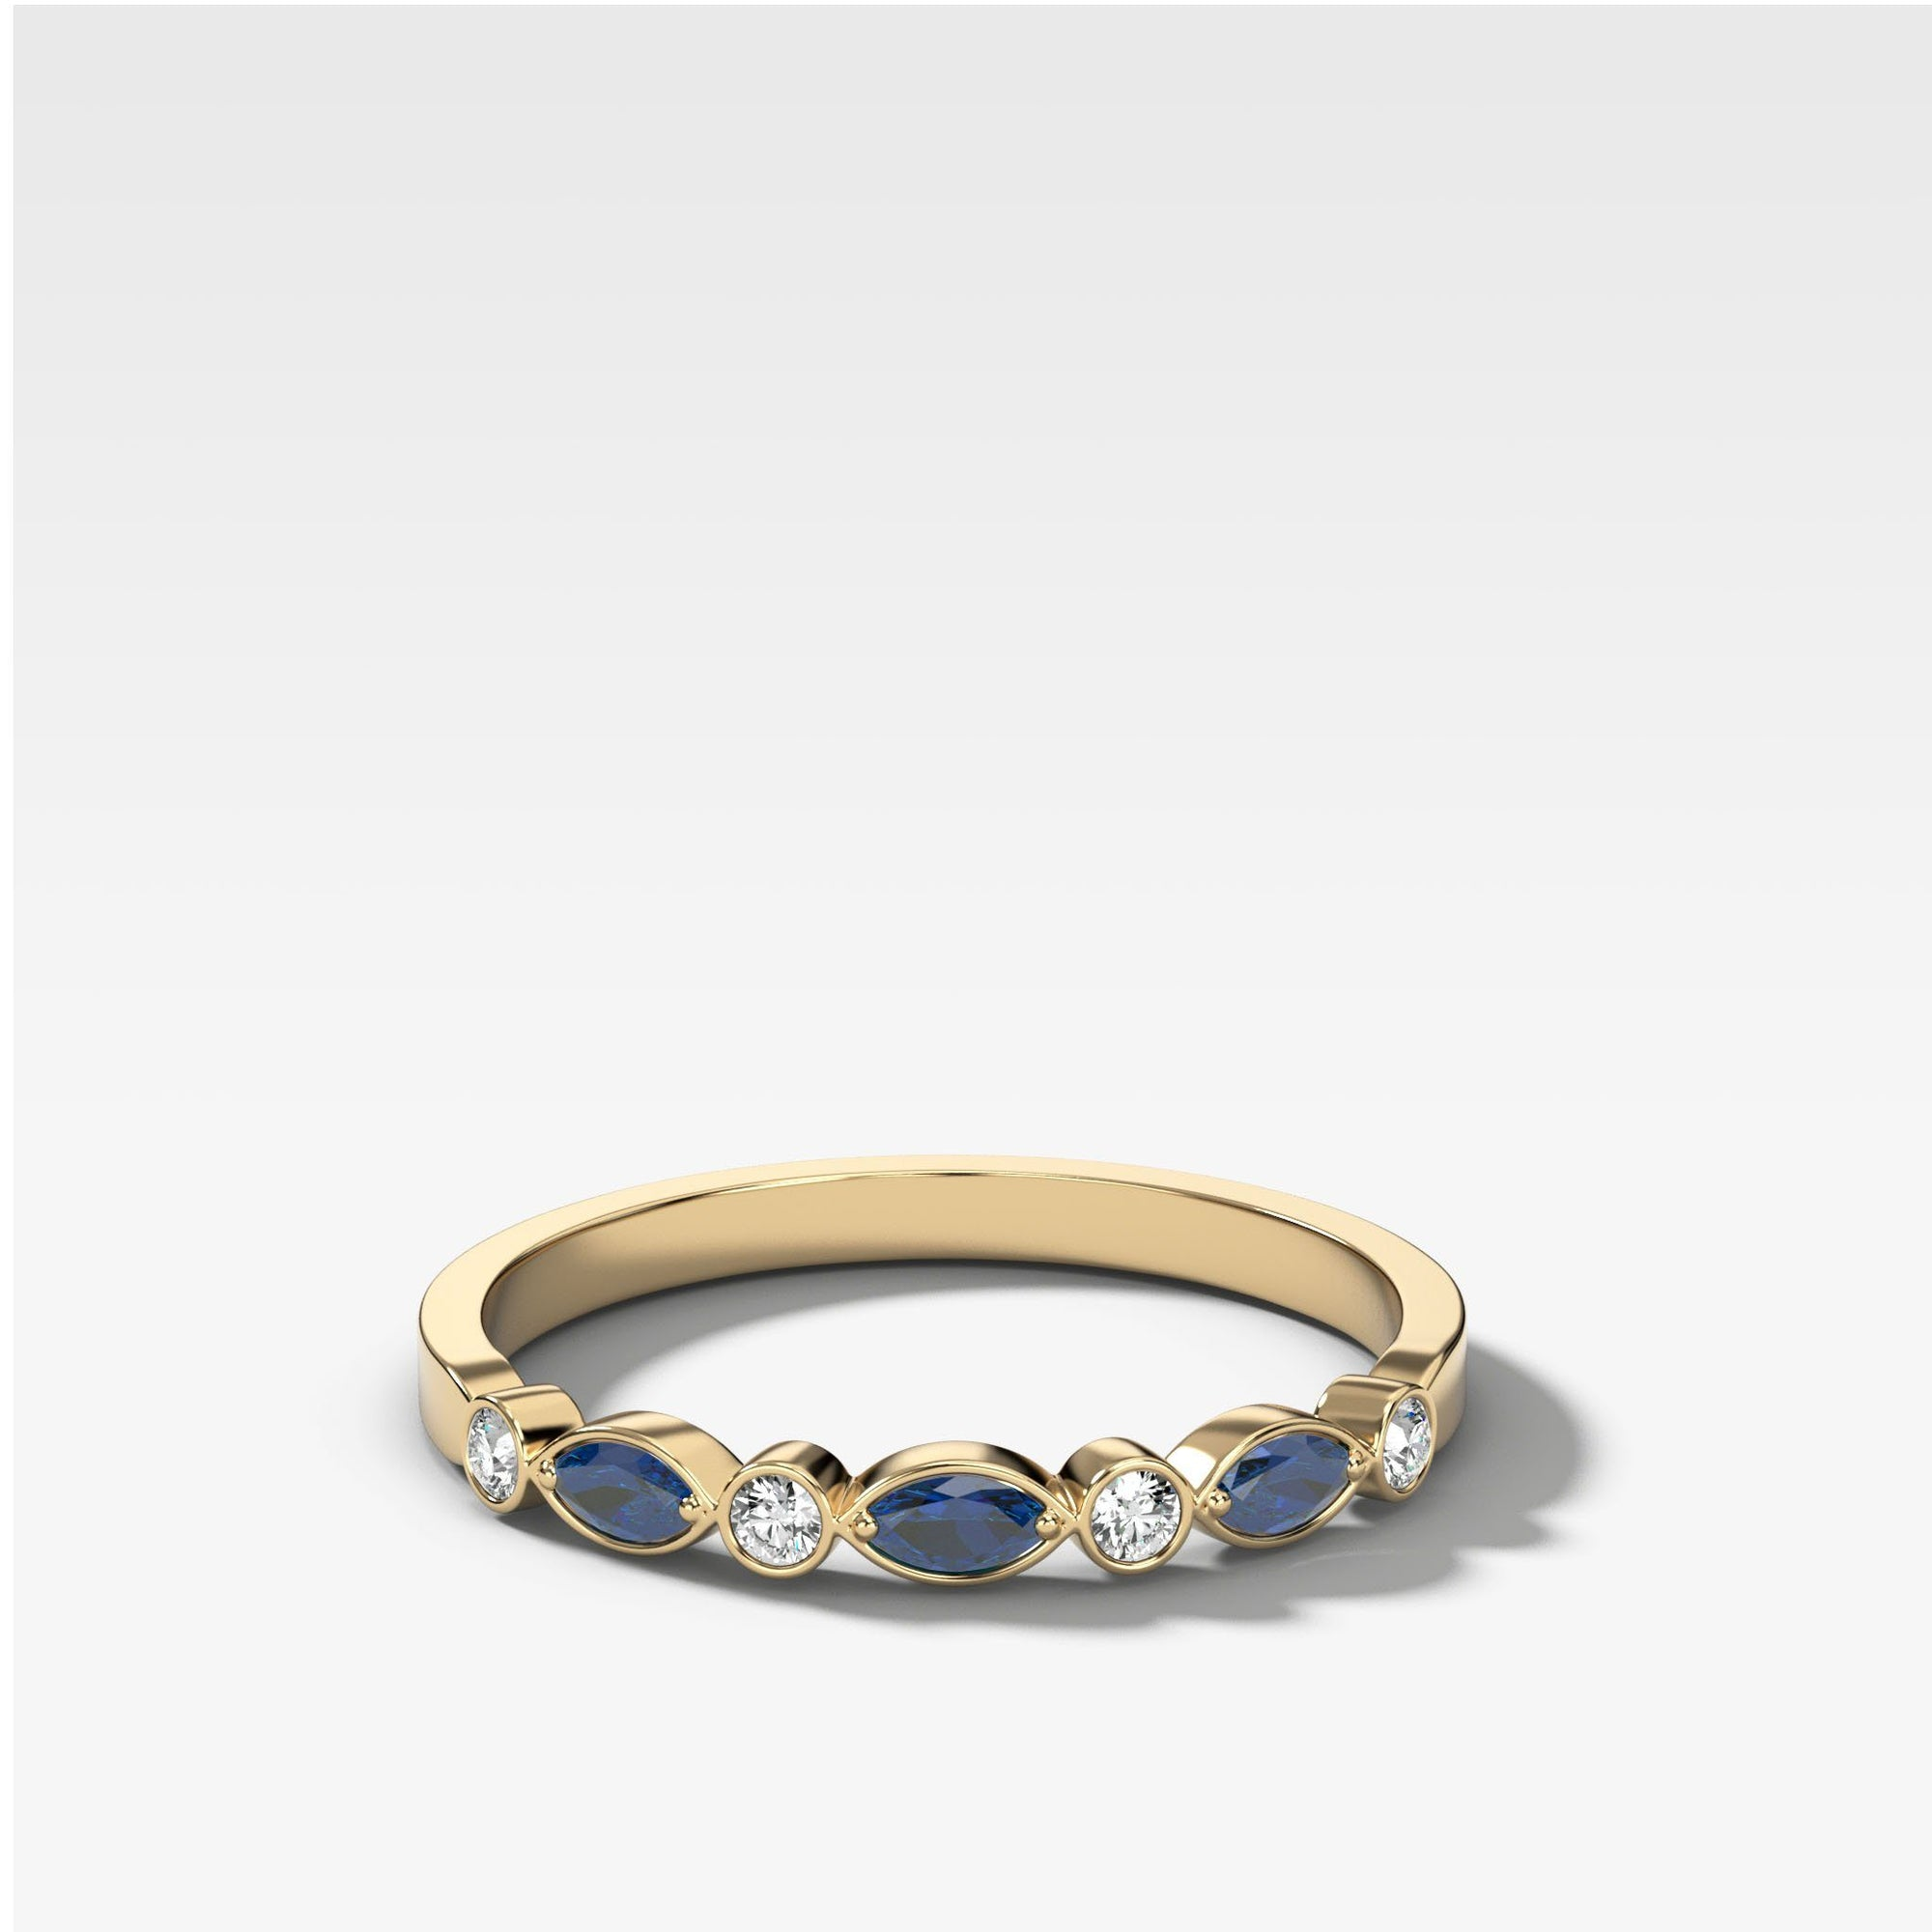 Diamond And Sapphire Tiara Bezel Set Wedding Band in Yellow Gold by Good Stone